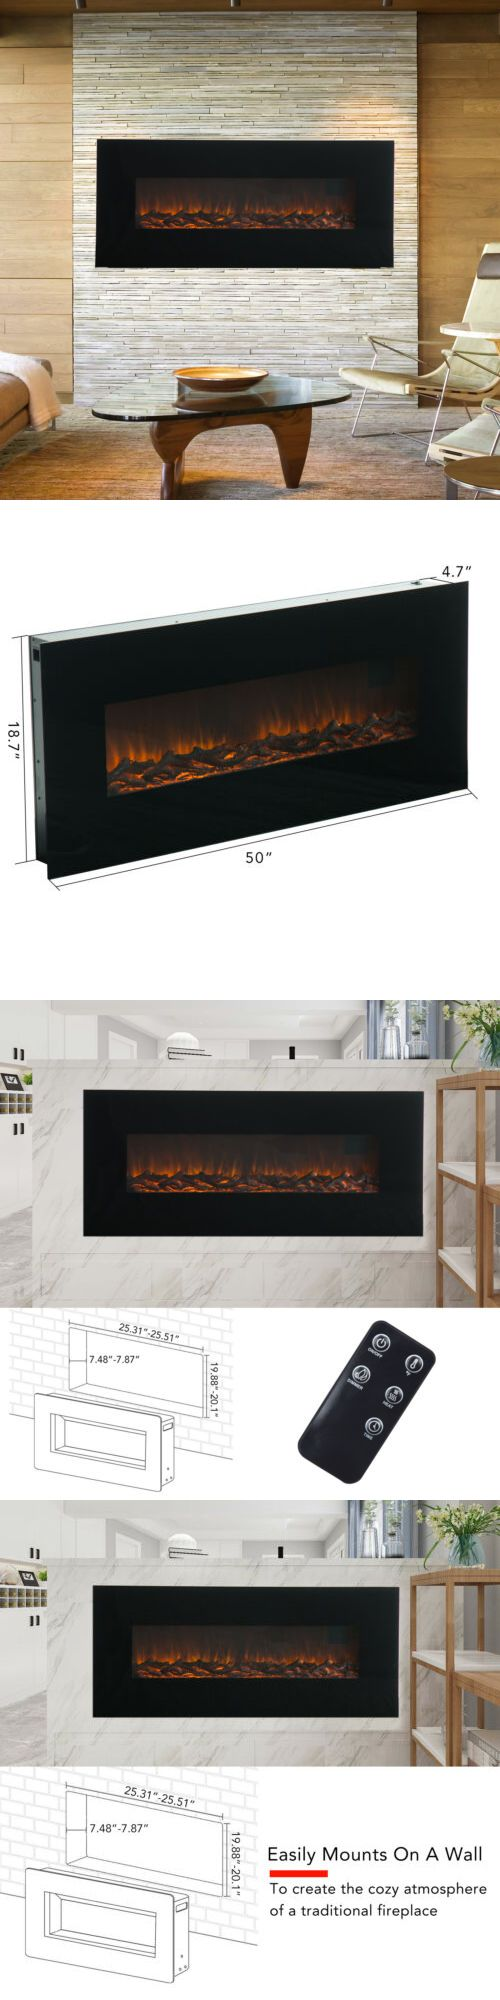 Air Conditioners And Heaters 185107 50 1500w Wall Mount Electric Fireplace Heater 3 Electric Fireplace Heater Wall Mount Electric Fireplace Electric Fireplace